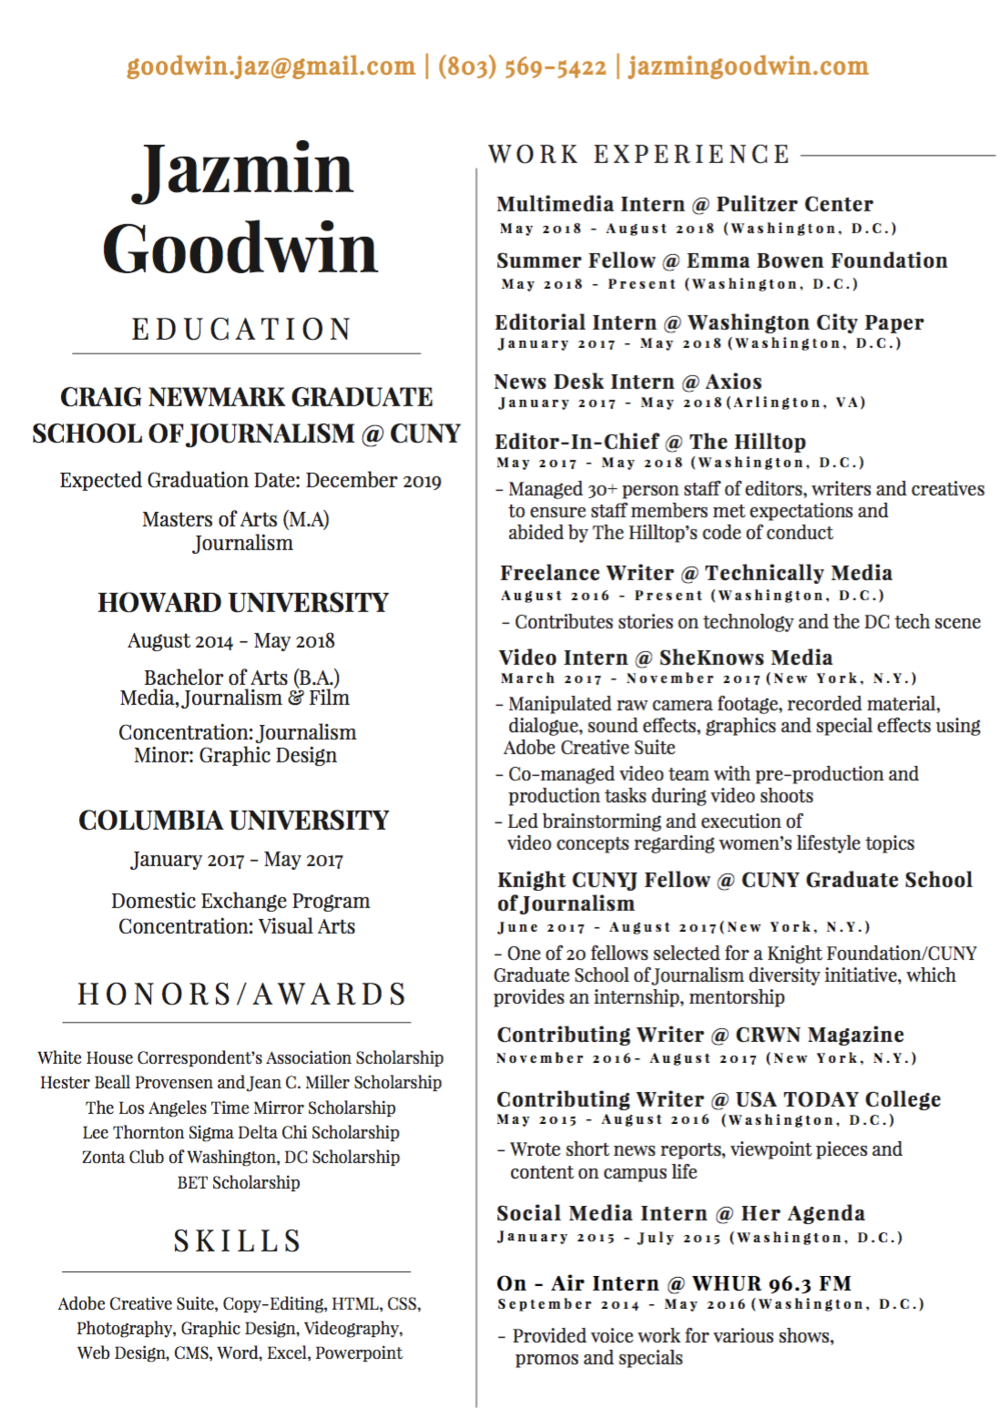 RESUME — Jazmin Goodwin